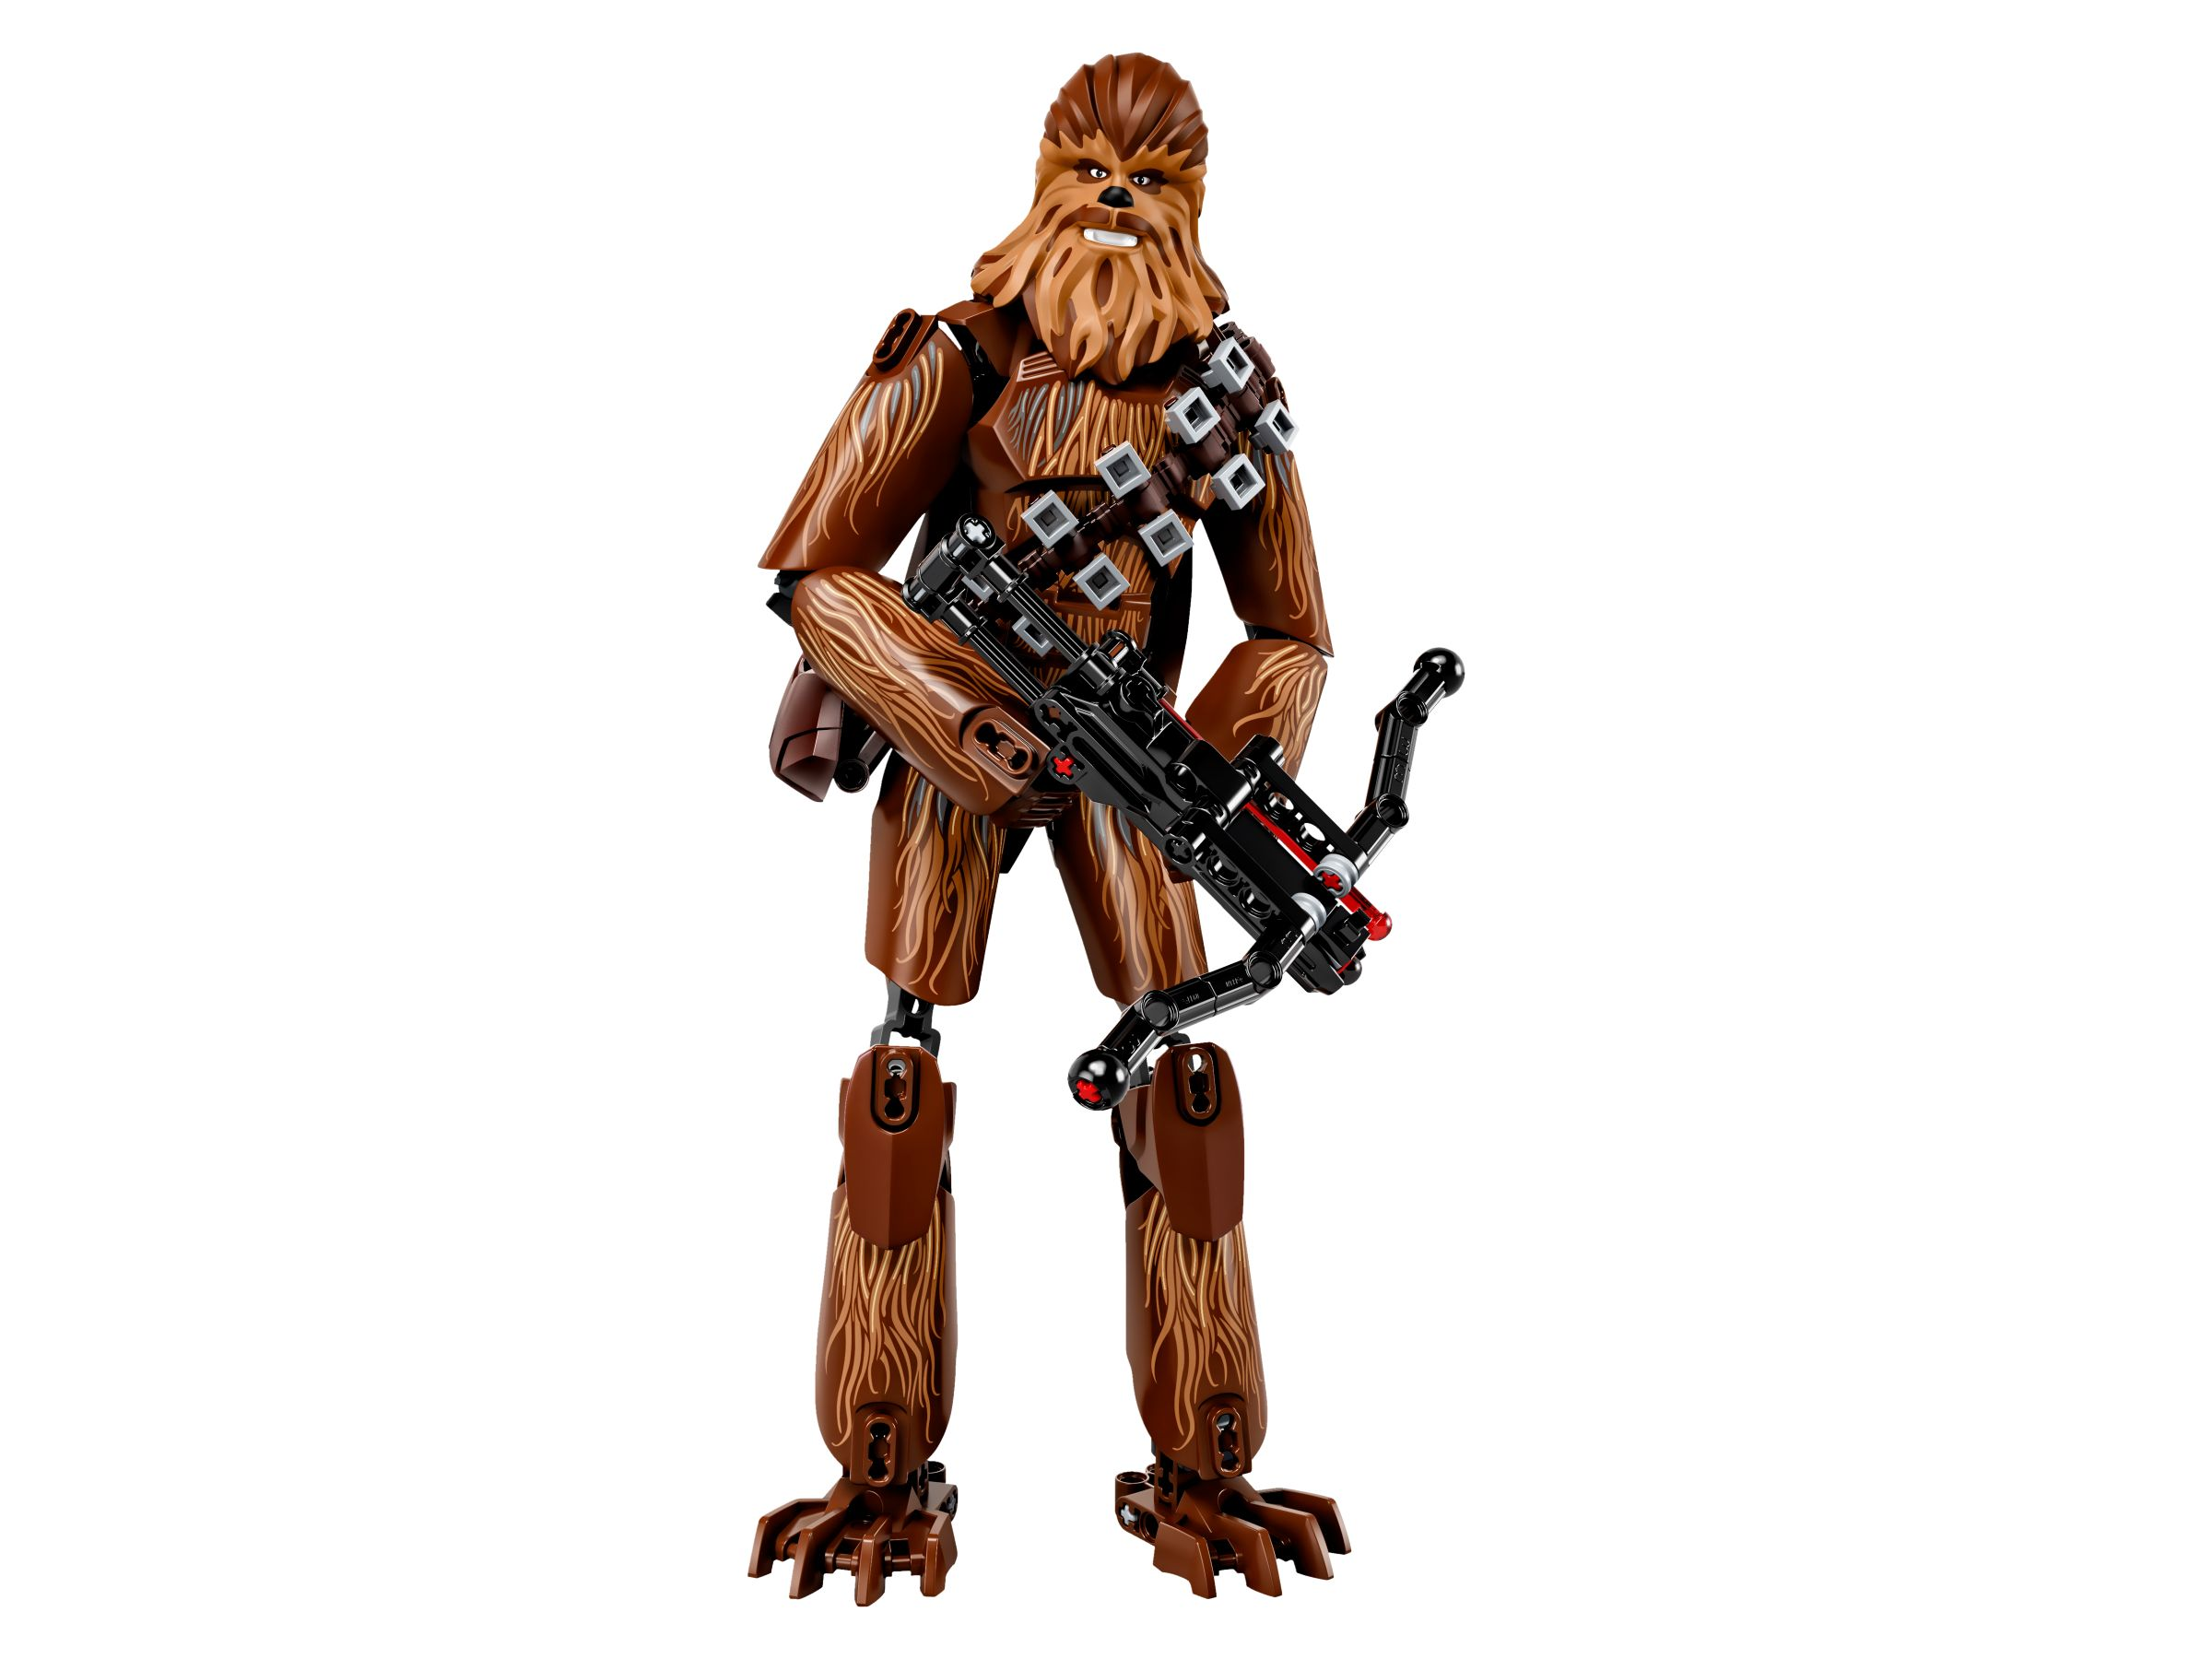 LEGO Star Wars Buildable Figures 75530 Chewbacca™